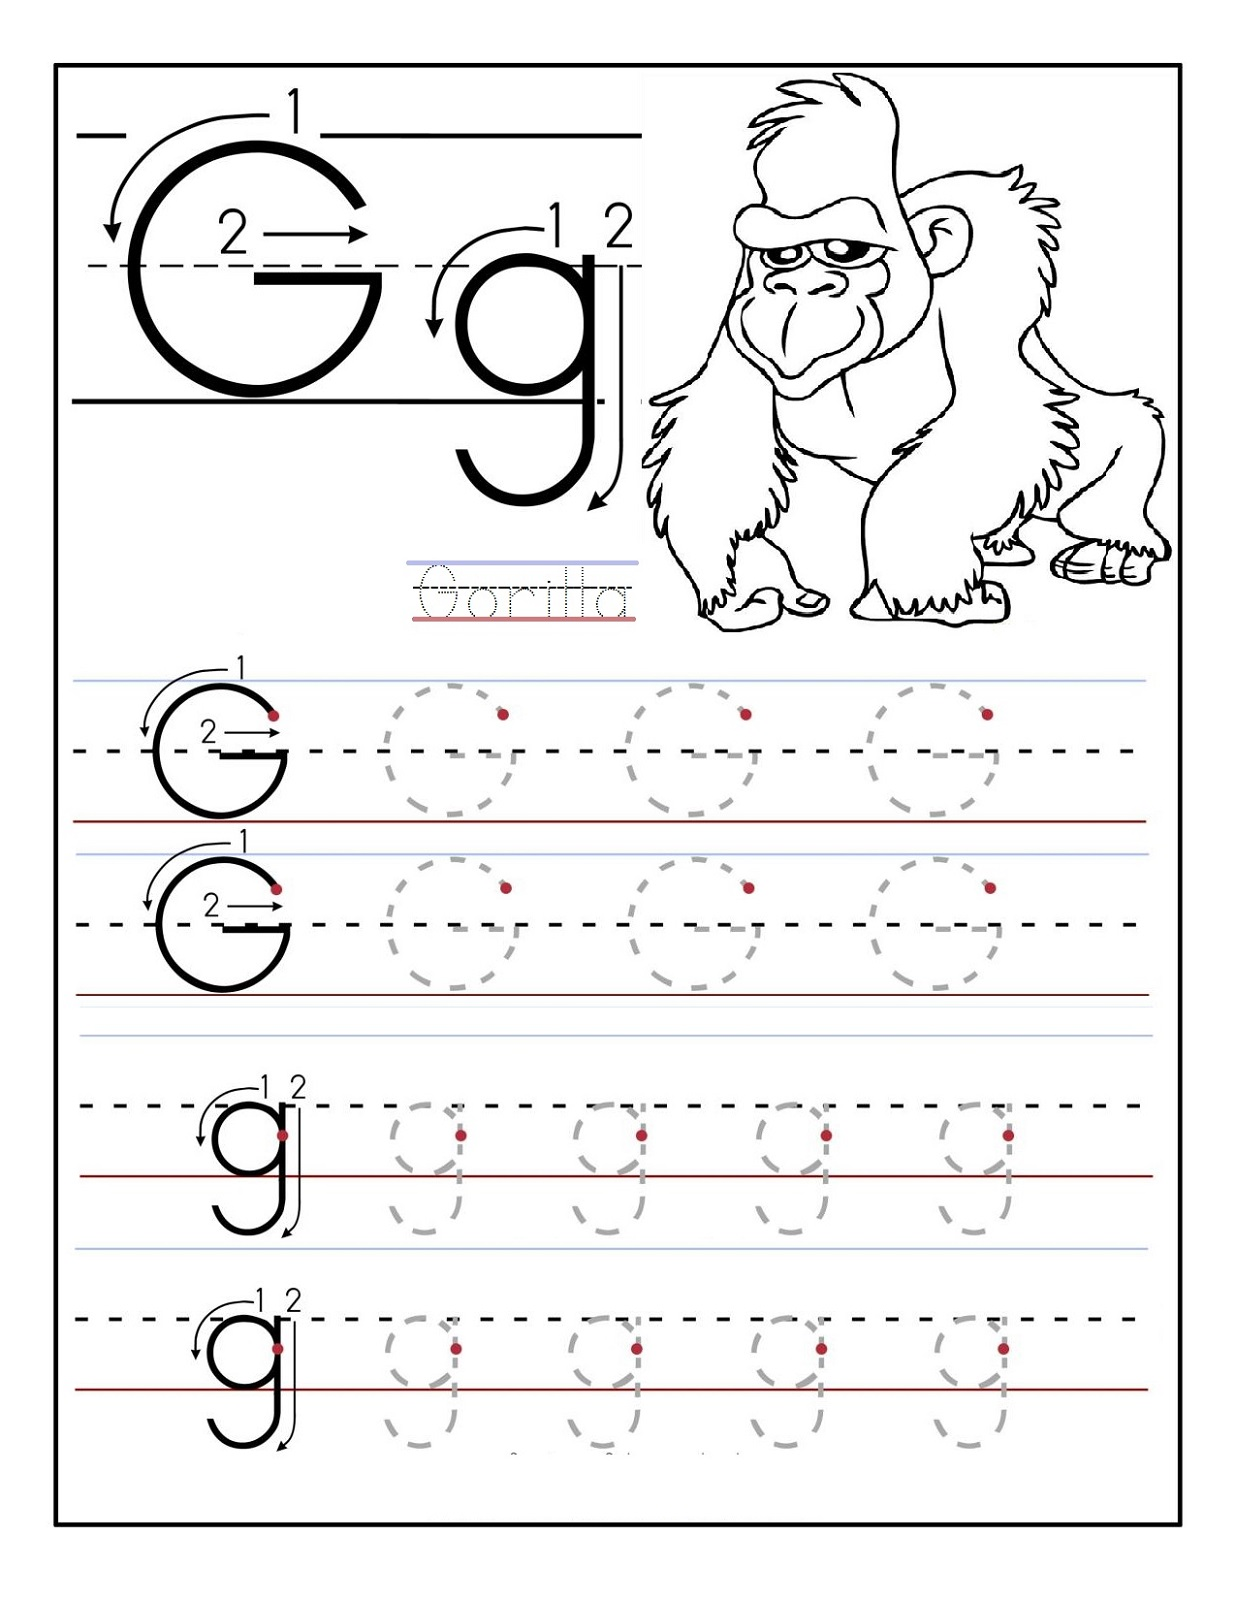 trace-letters-worksheet-kindergarten